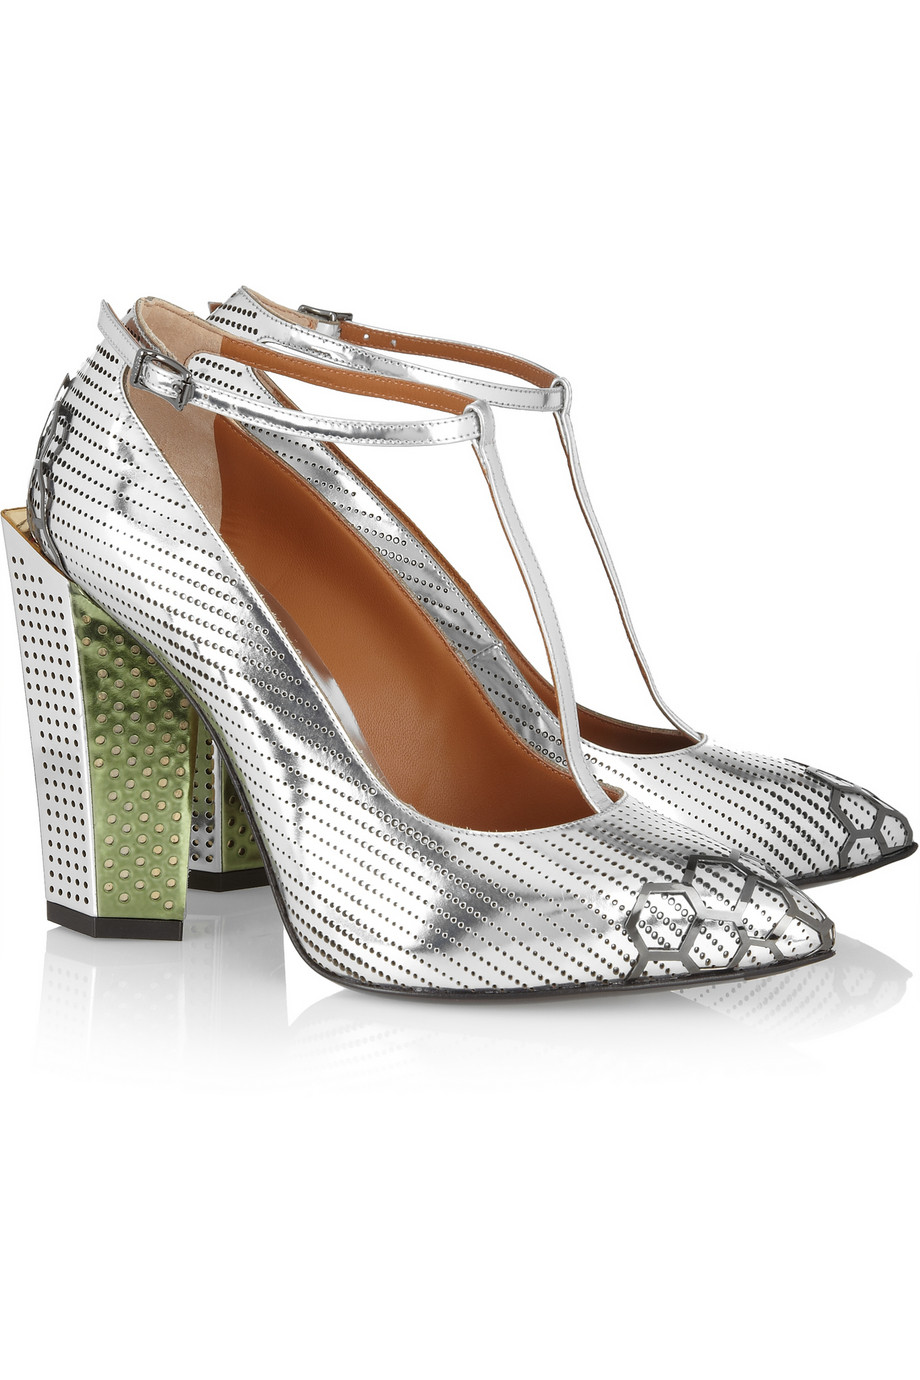 Fendi Metallic leather T-bar pumps – 50% at THE OUTNET.COM